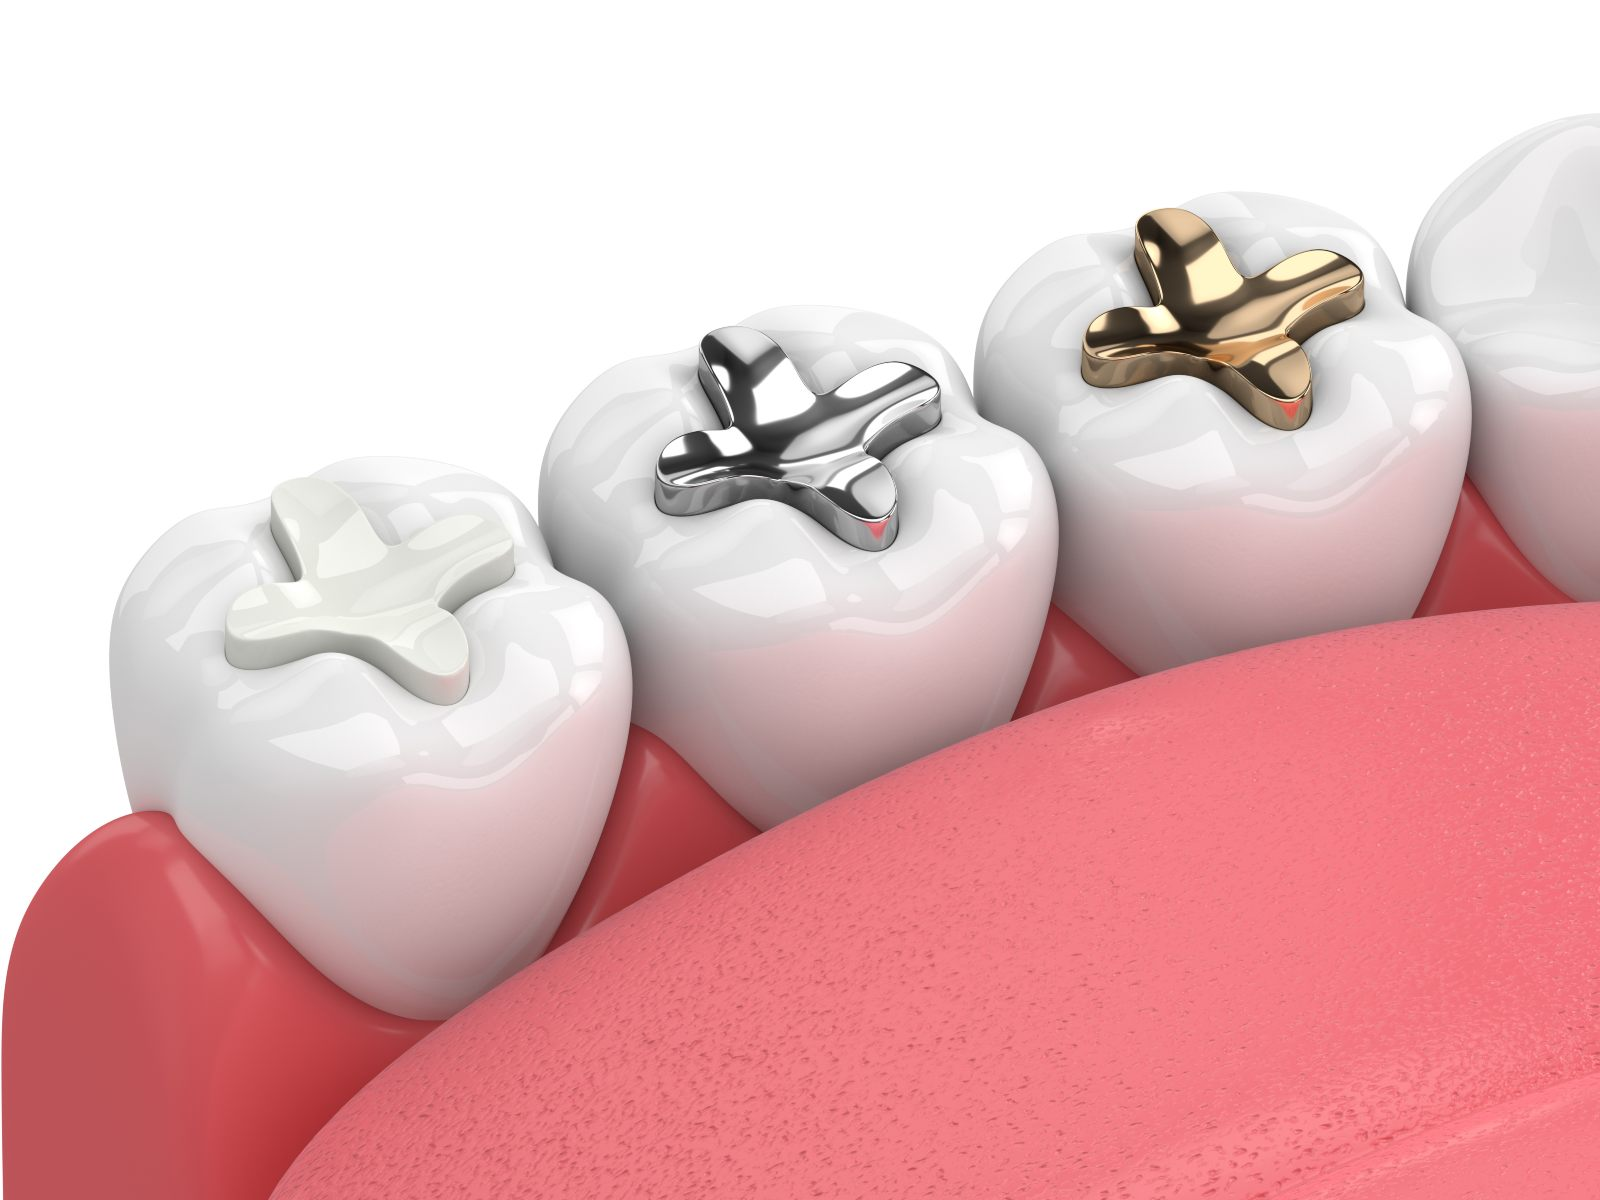 different colored and material dental fillings in a mouth